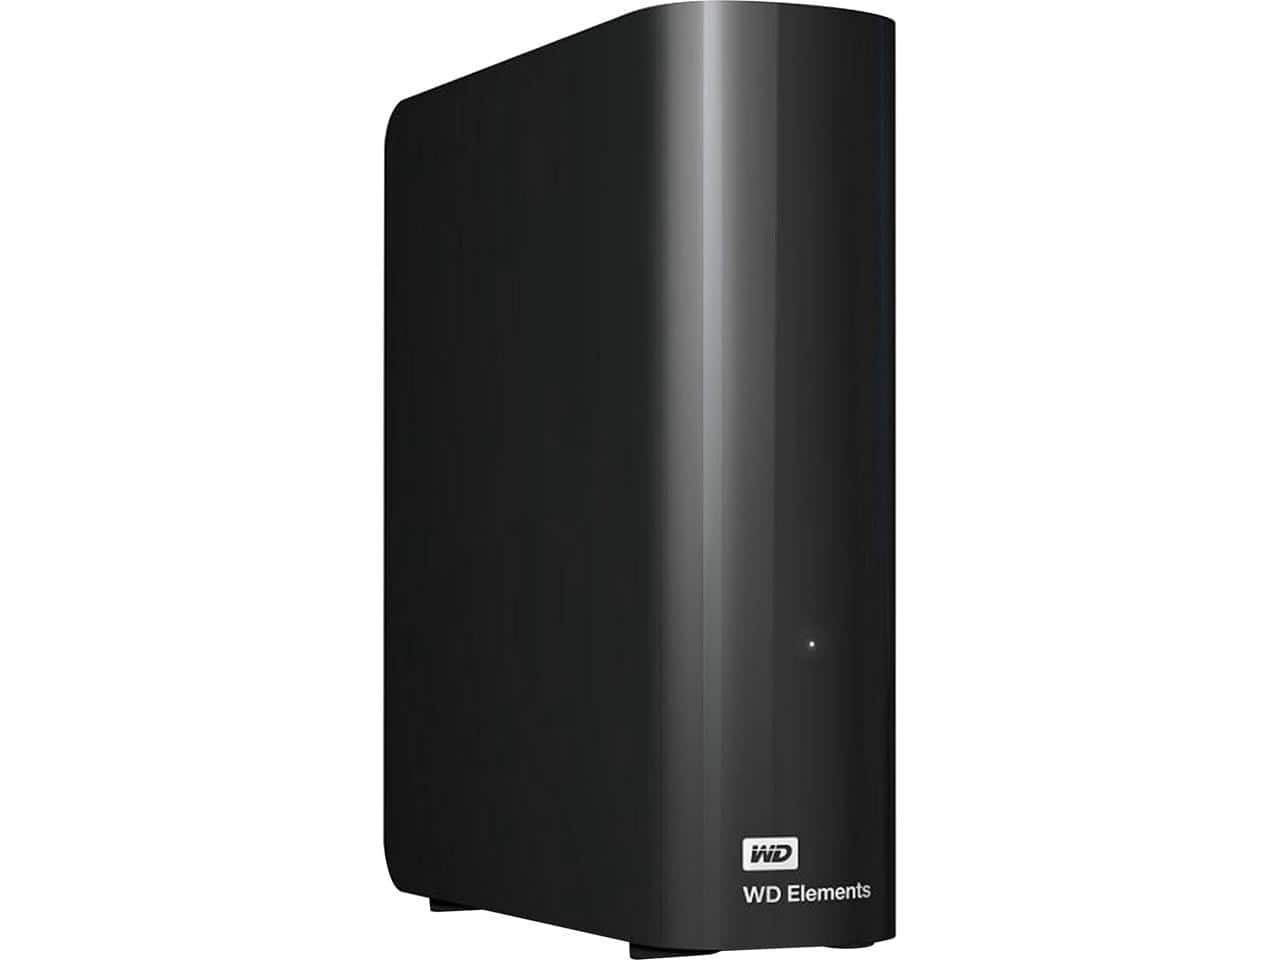 12TB WD Elements USB 3.0 External Desktop Hard Drive